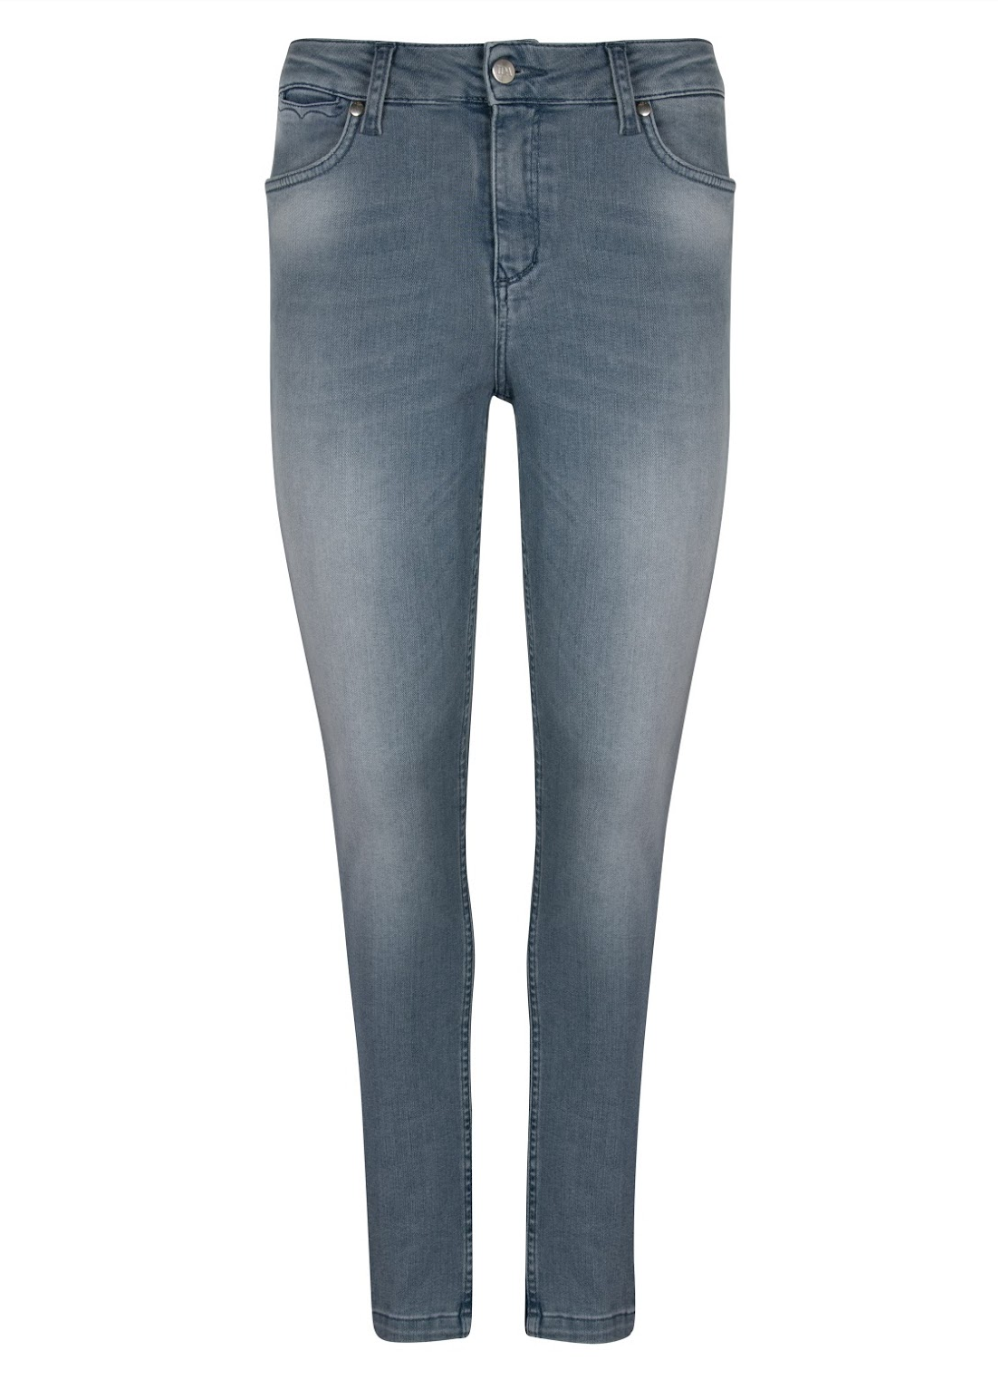 Rizzo The High Top Ankle Skinny Jeans - Stormy